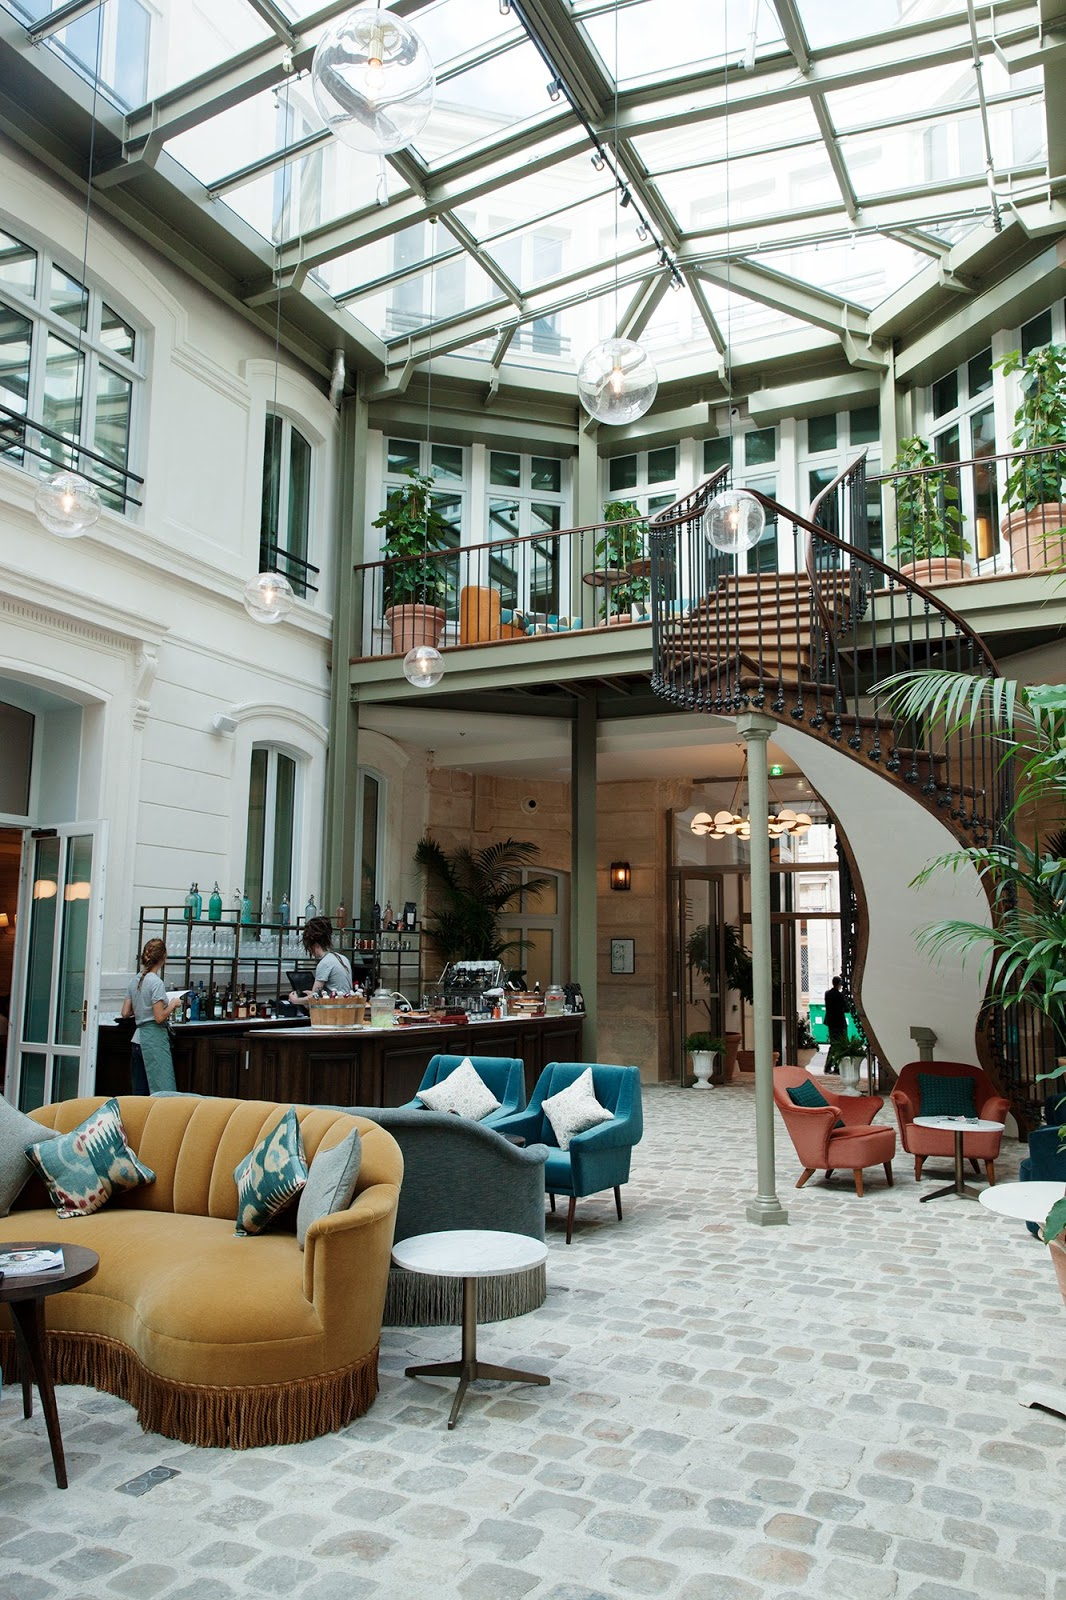 Hotel Hoxton Amsterdam Travel Destinations : The Hoxton Hotel In Paris. | Cool